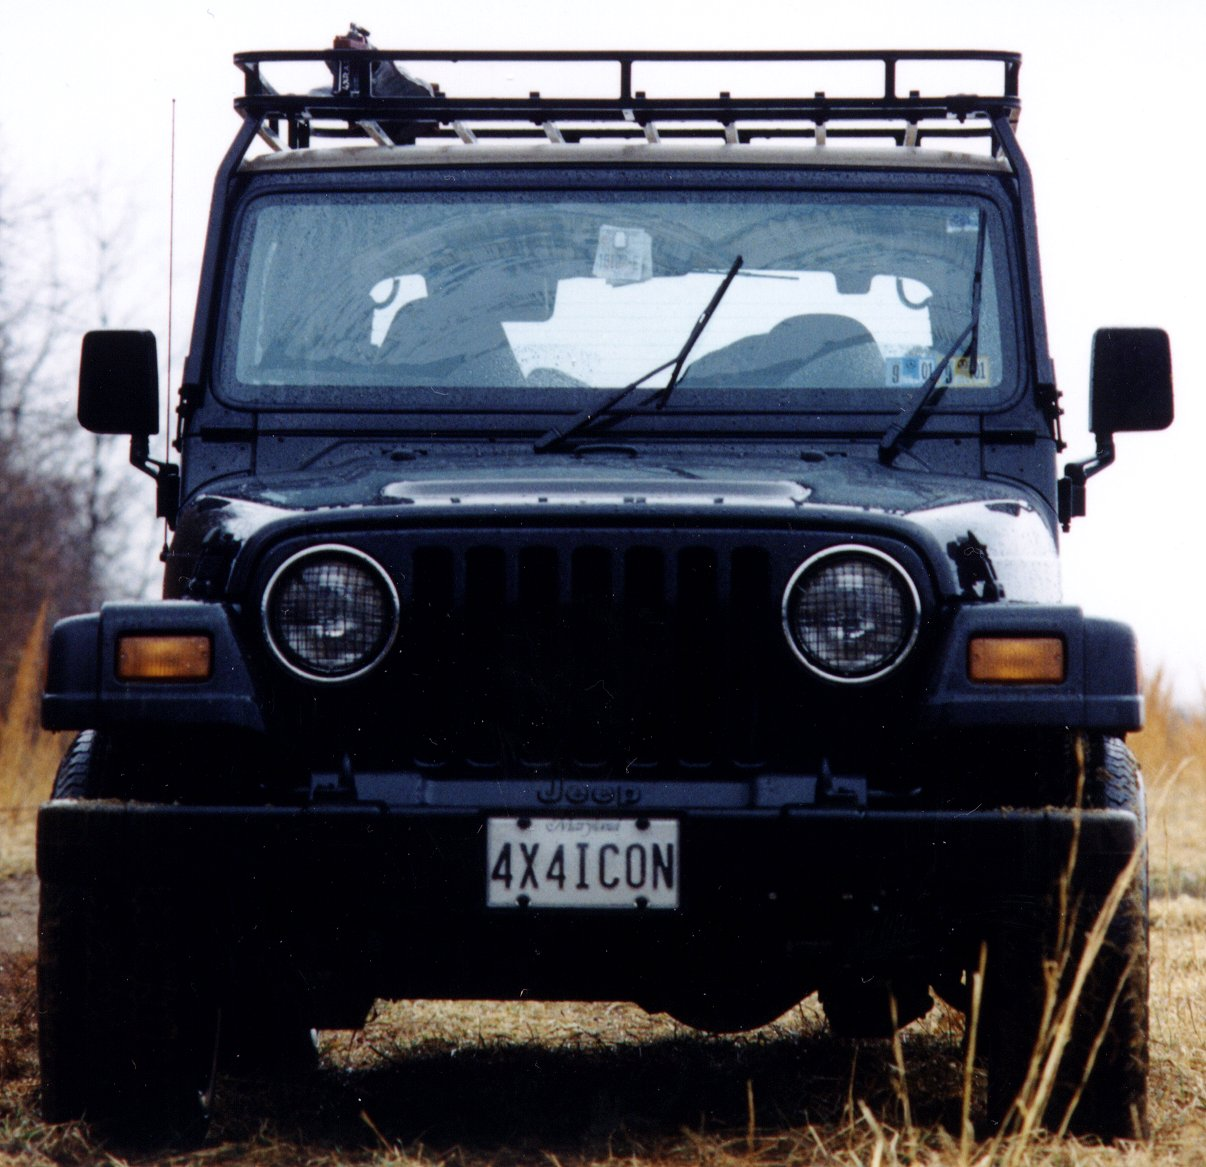 1999 Jeep Wrangler Sport - Click here to see what modifications I've made so far...